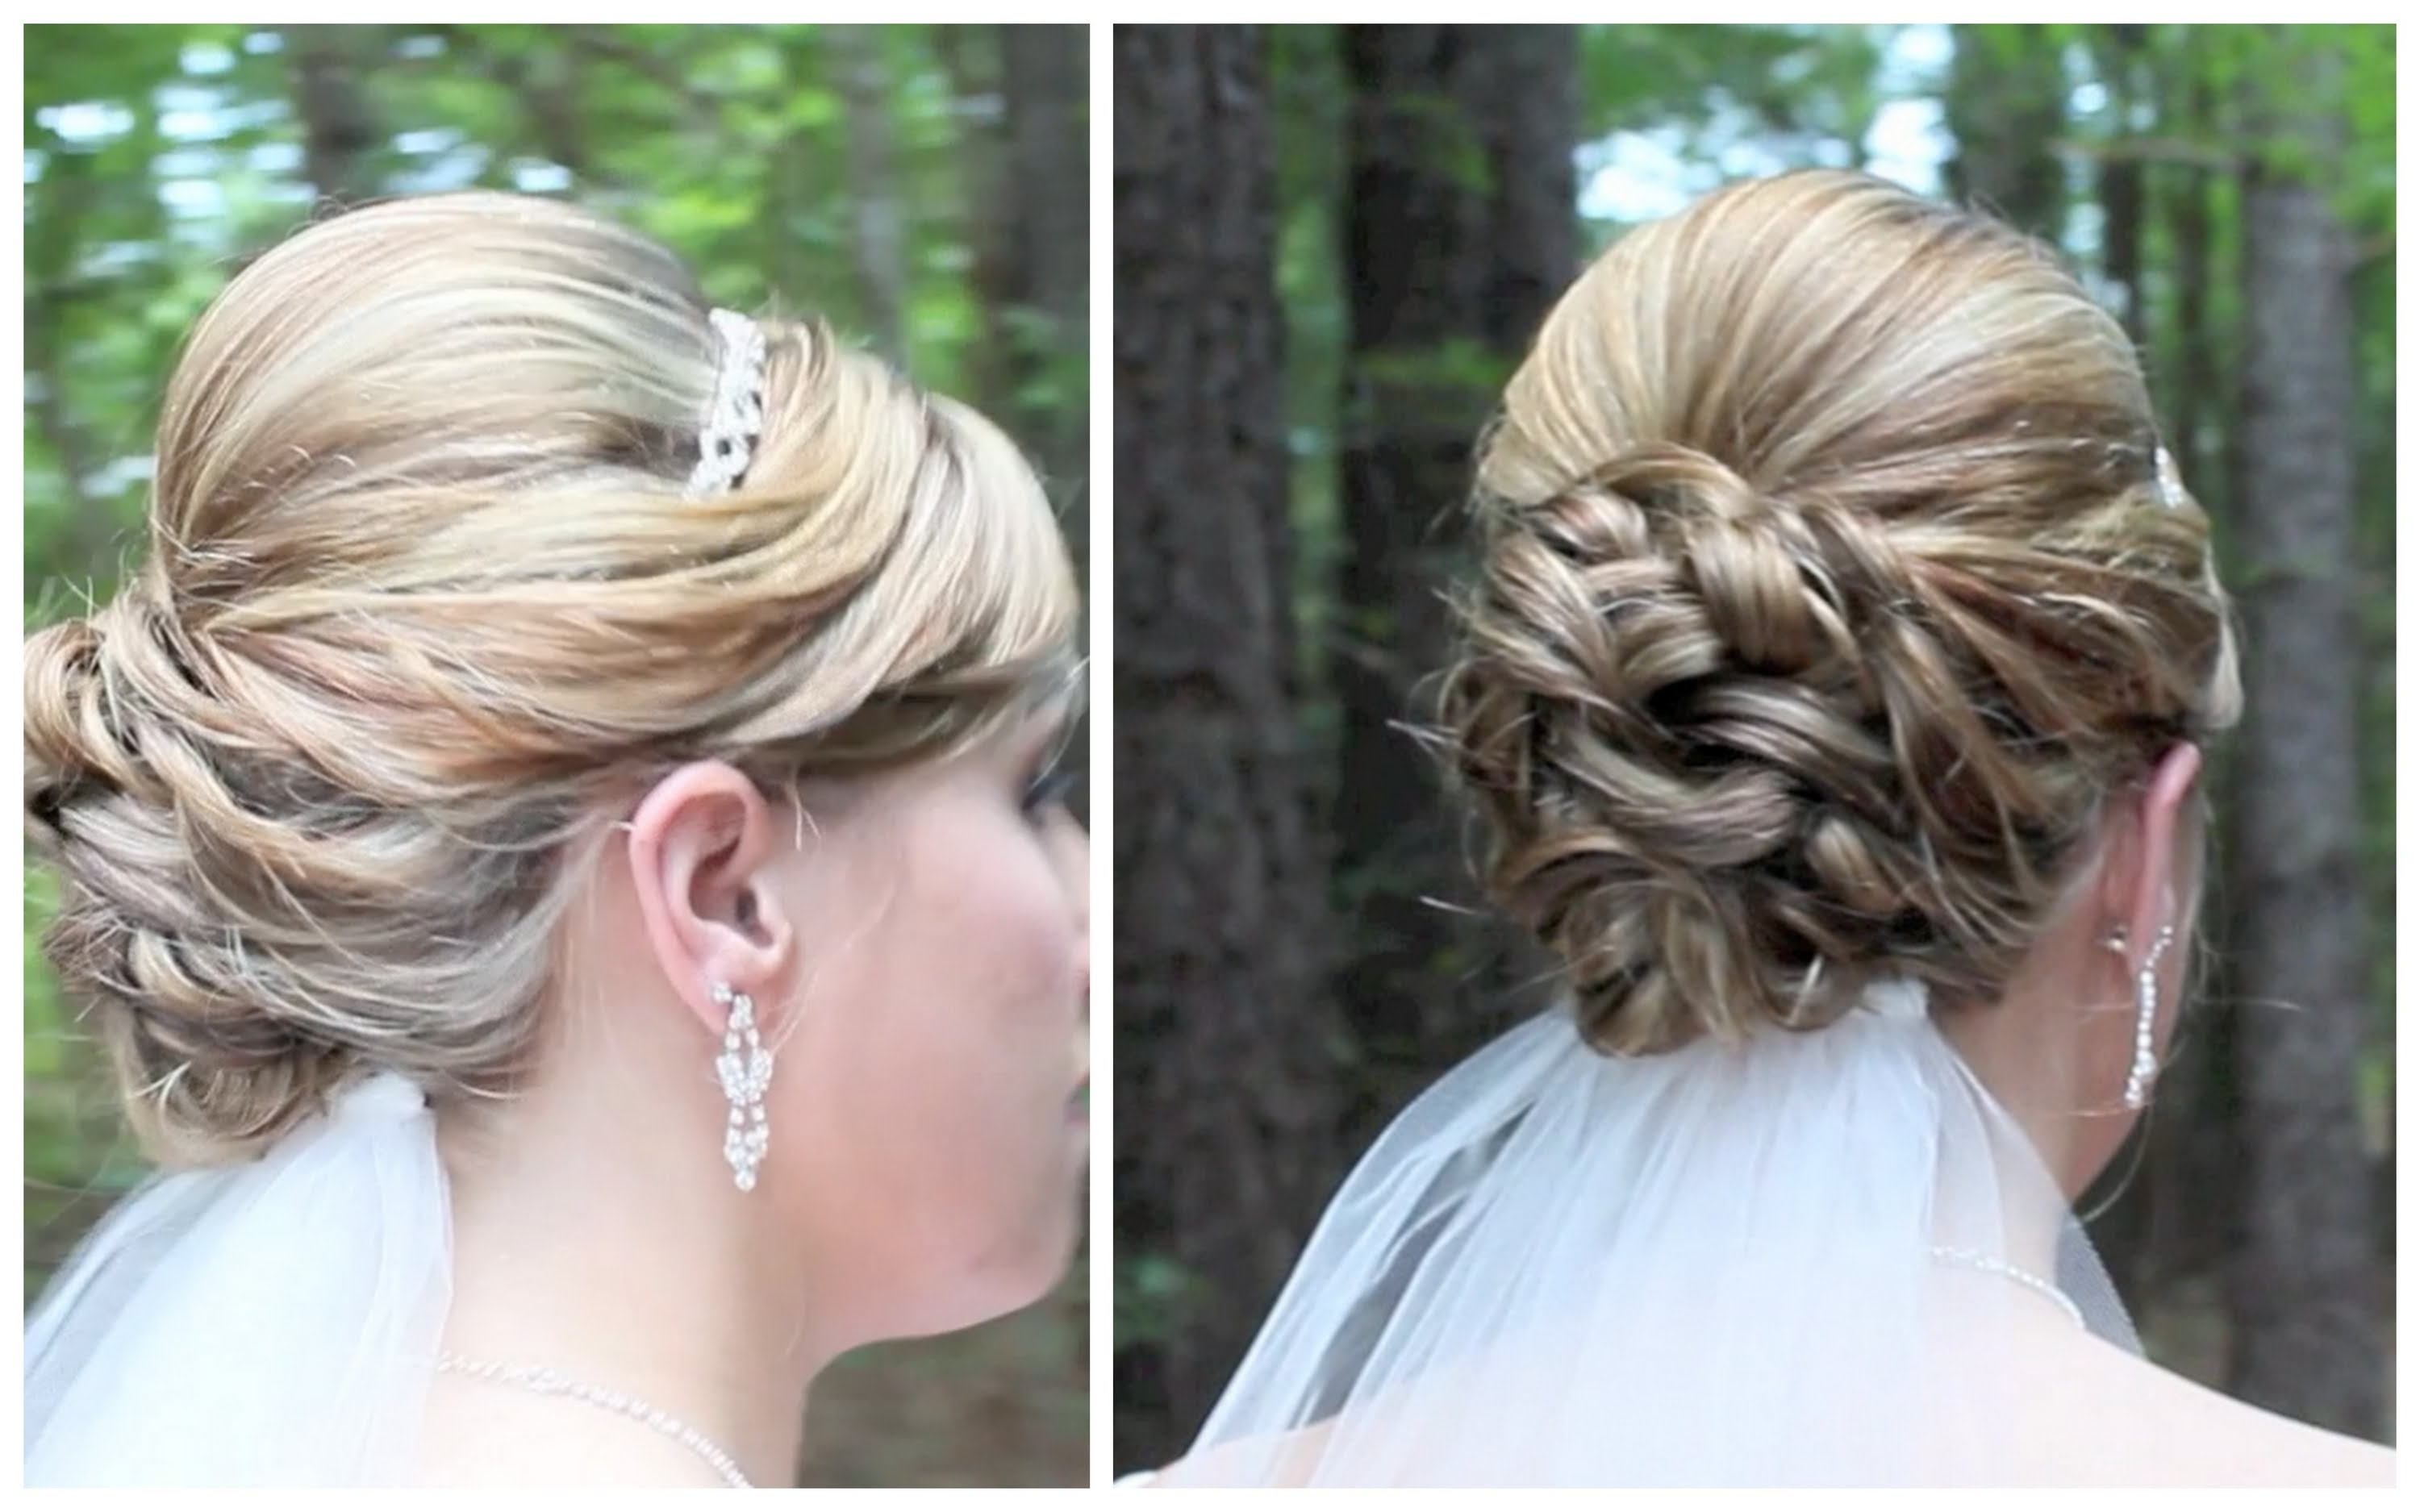 Bridal Updo On Shoulder Length Hair – Youtube Intended For Well Known Hairstyles For Medium Length Hair For Wedding (View 2 of 15)